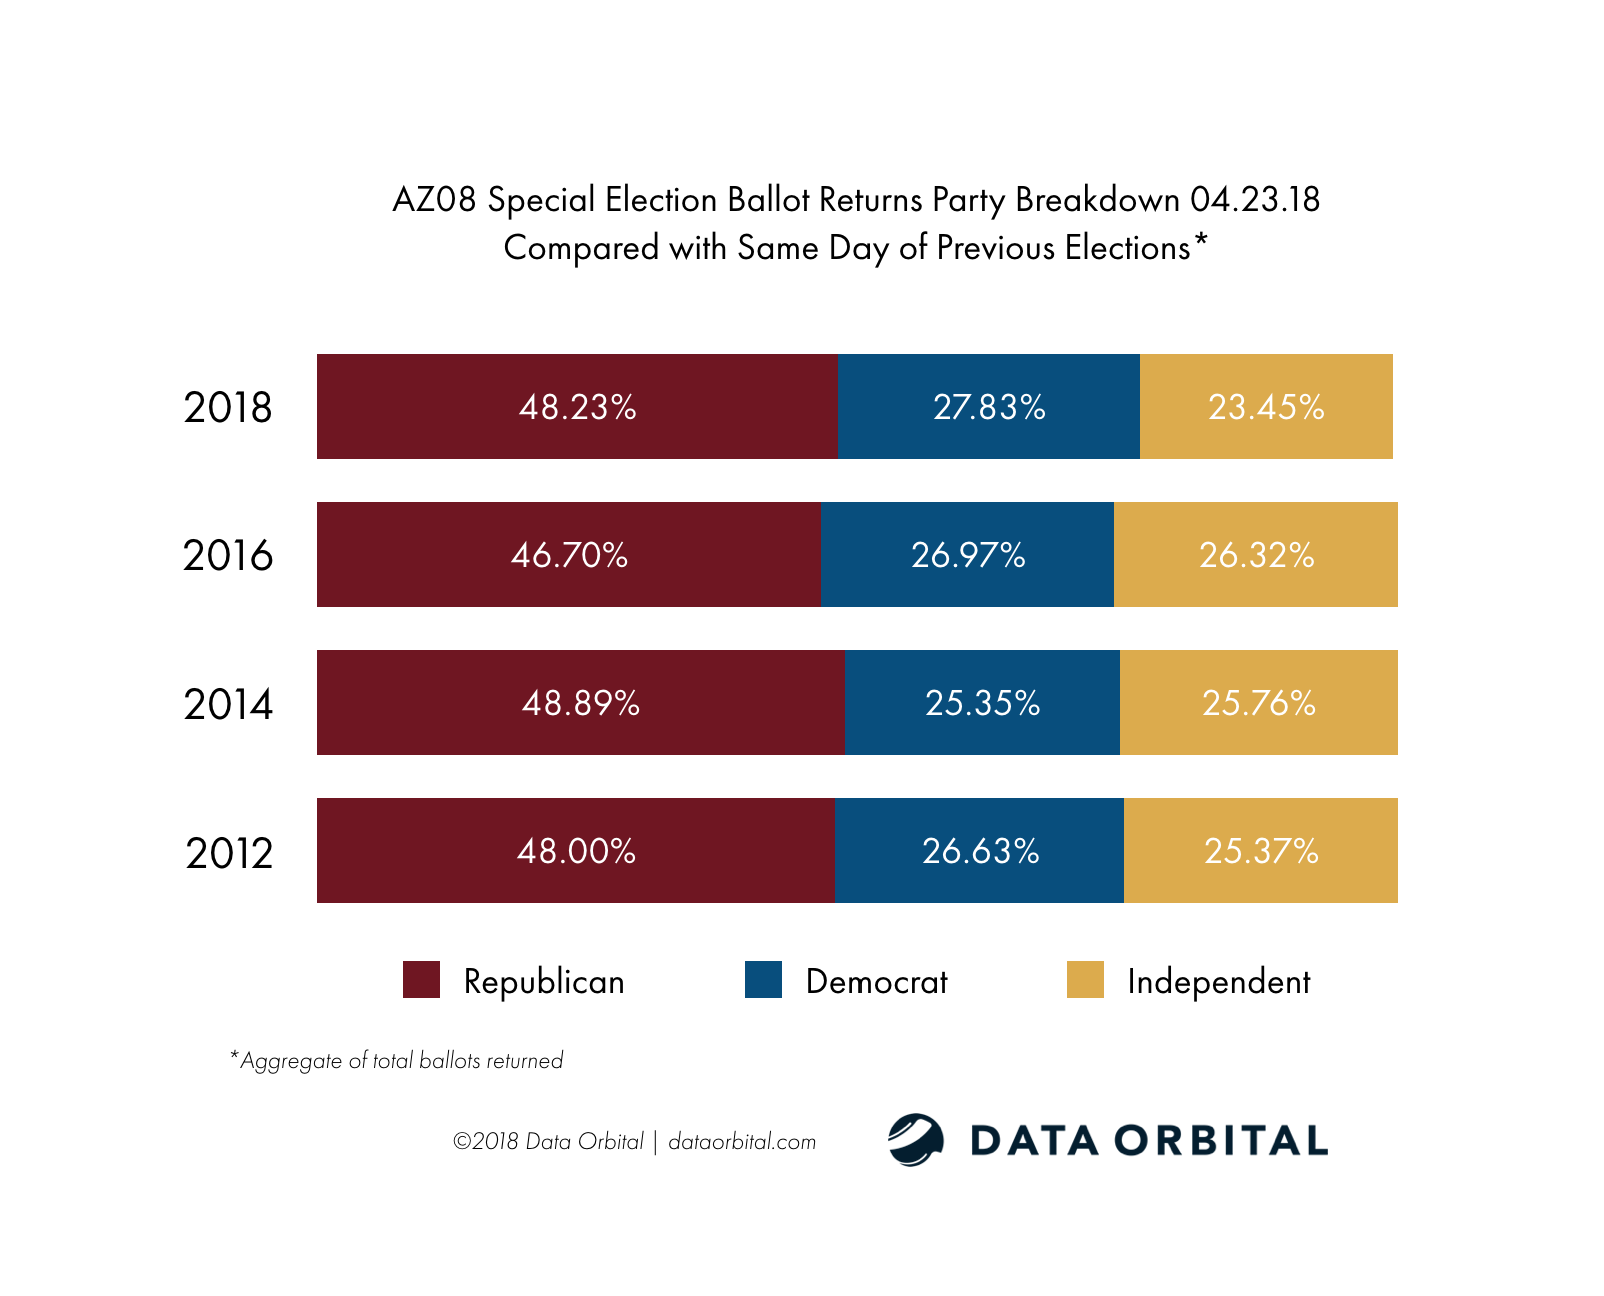 AZ08 Special Election Ballot Returns Party Breakdown Compared with Same Day 04.23.18